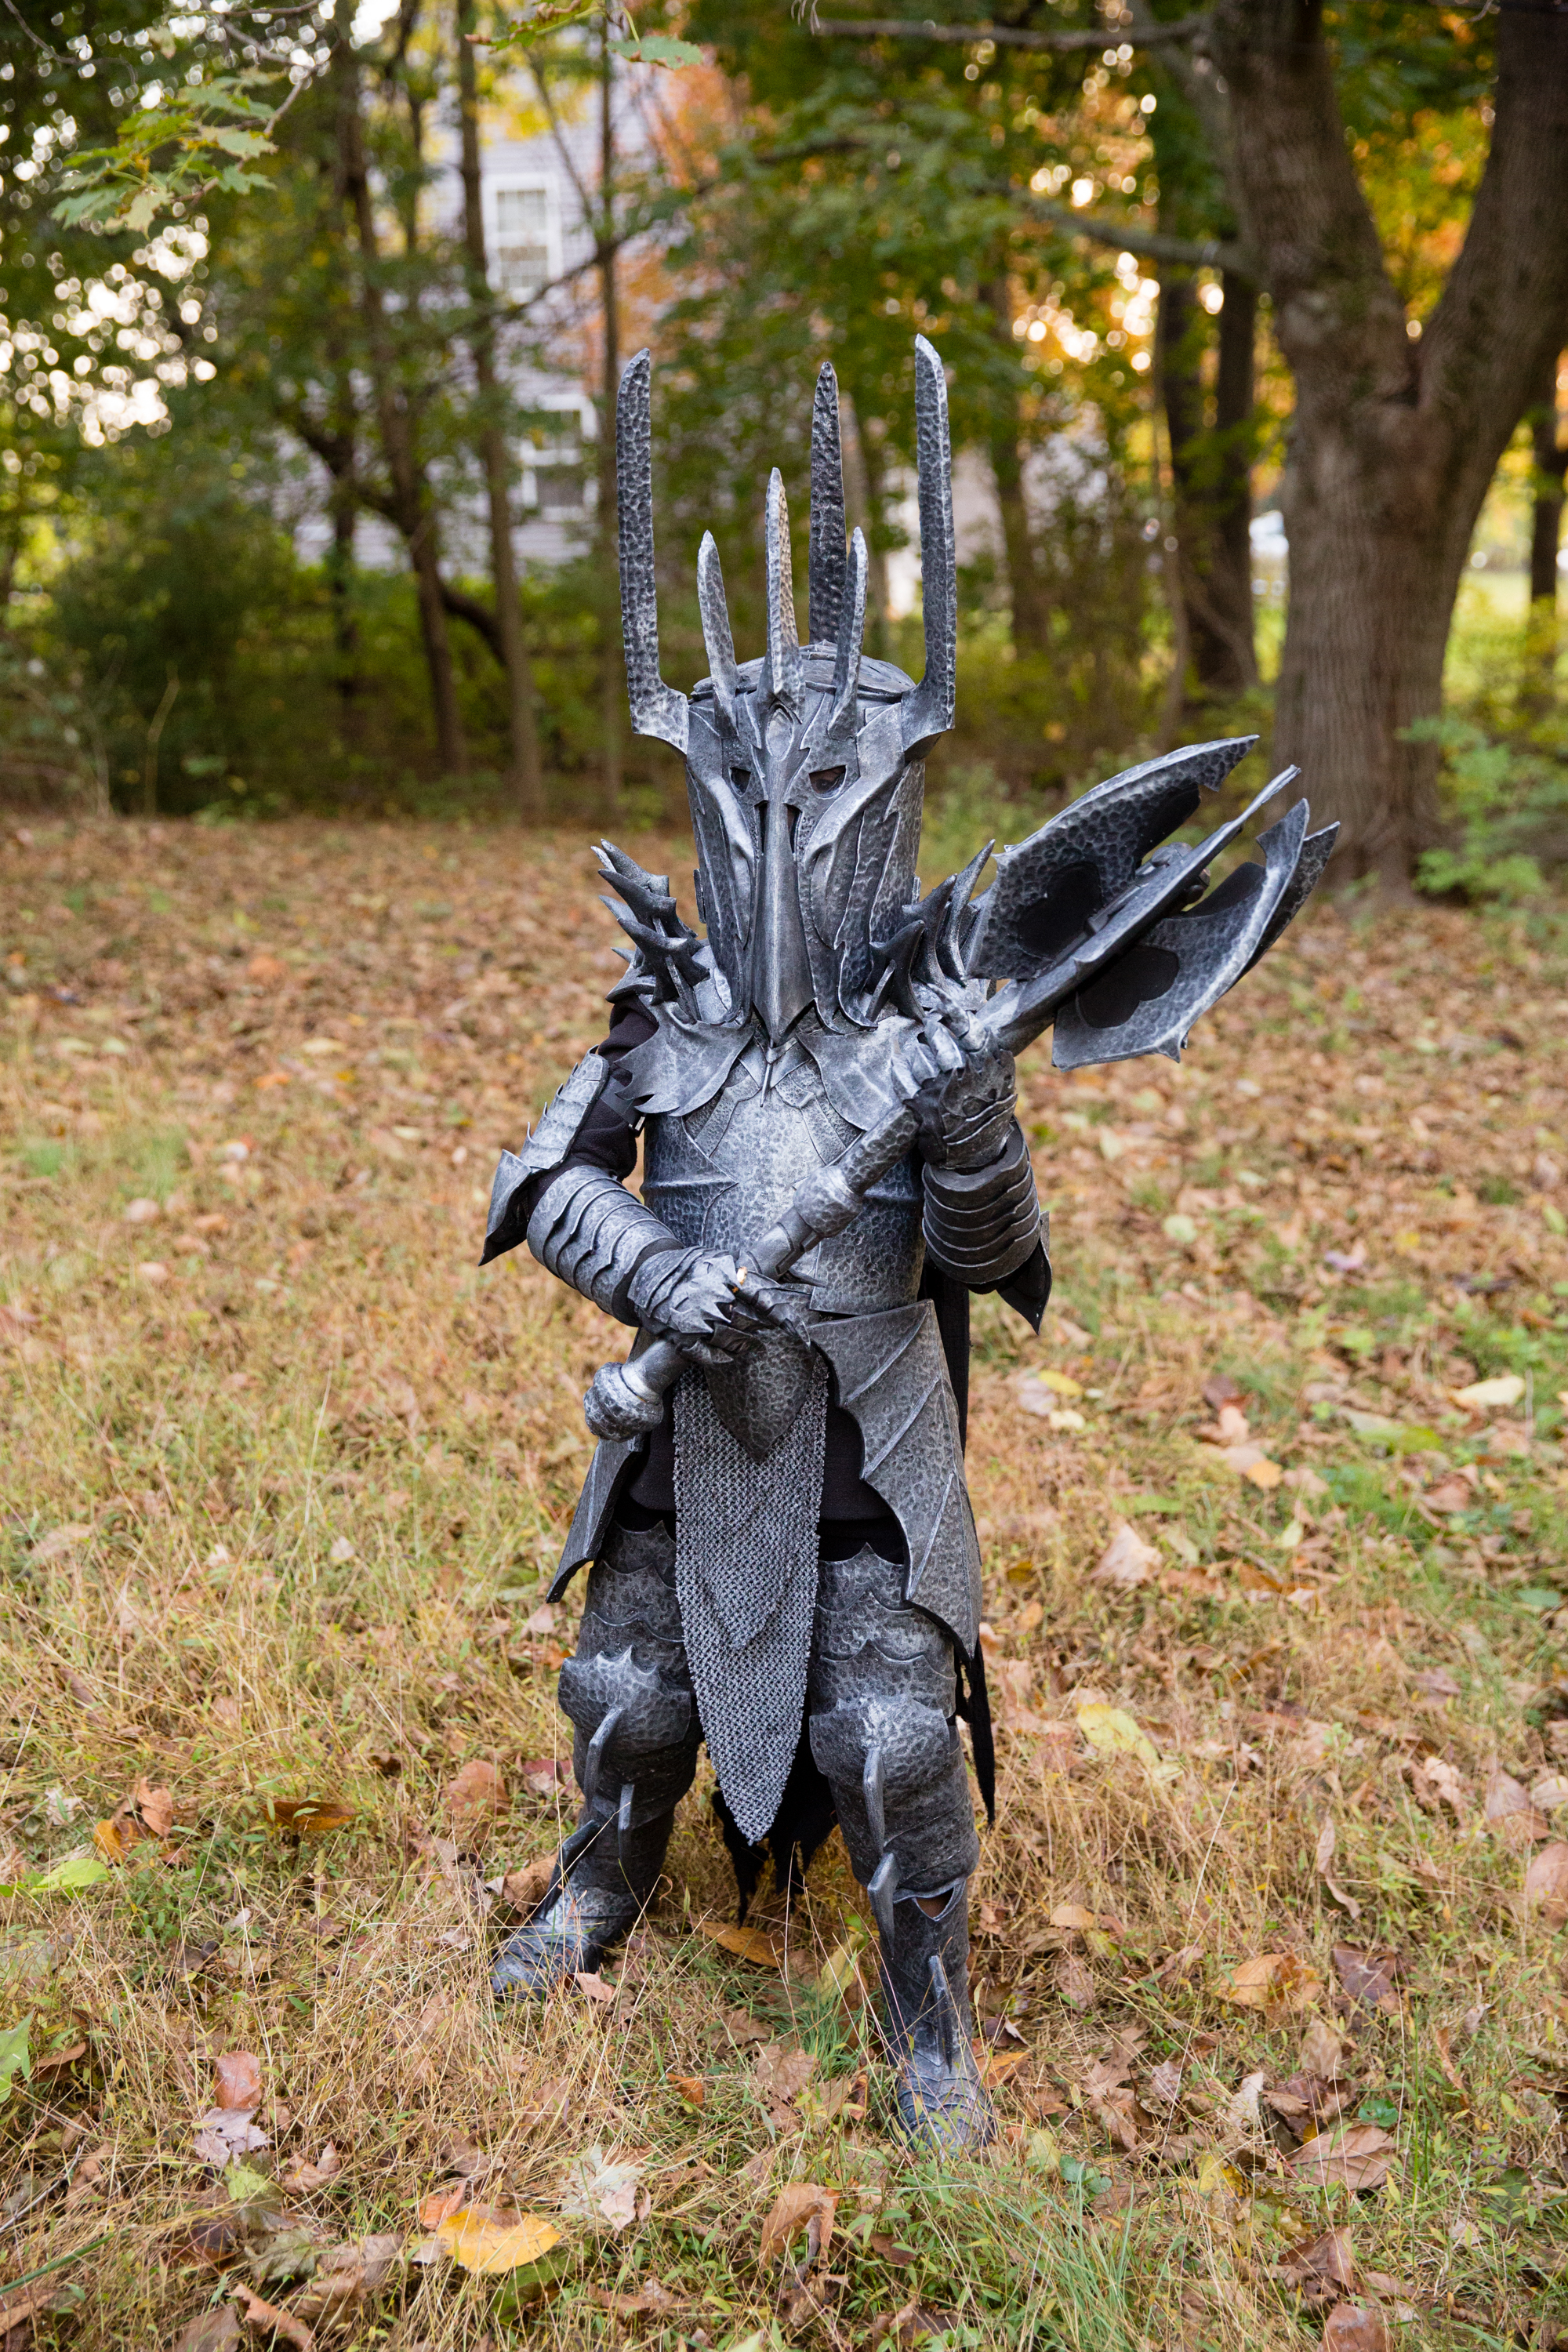 Sauron Costume Full View